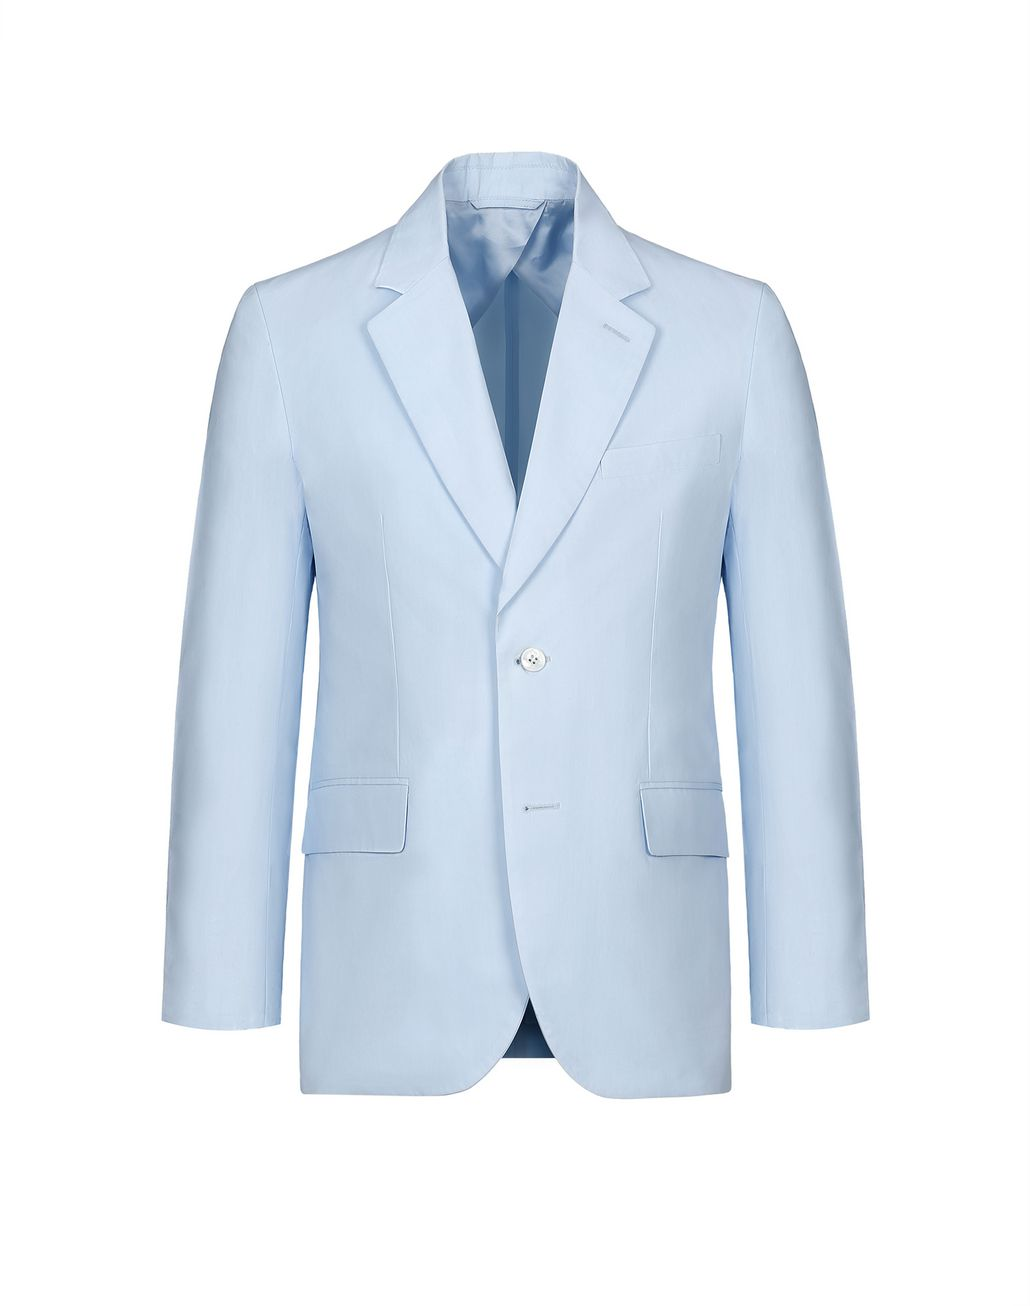 BRIONI Light Blue Decostructed Jacket Jackets Man f